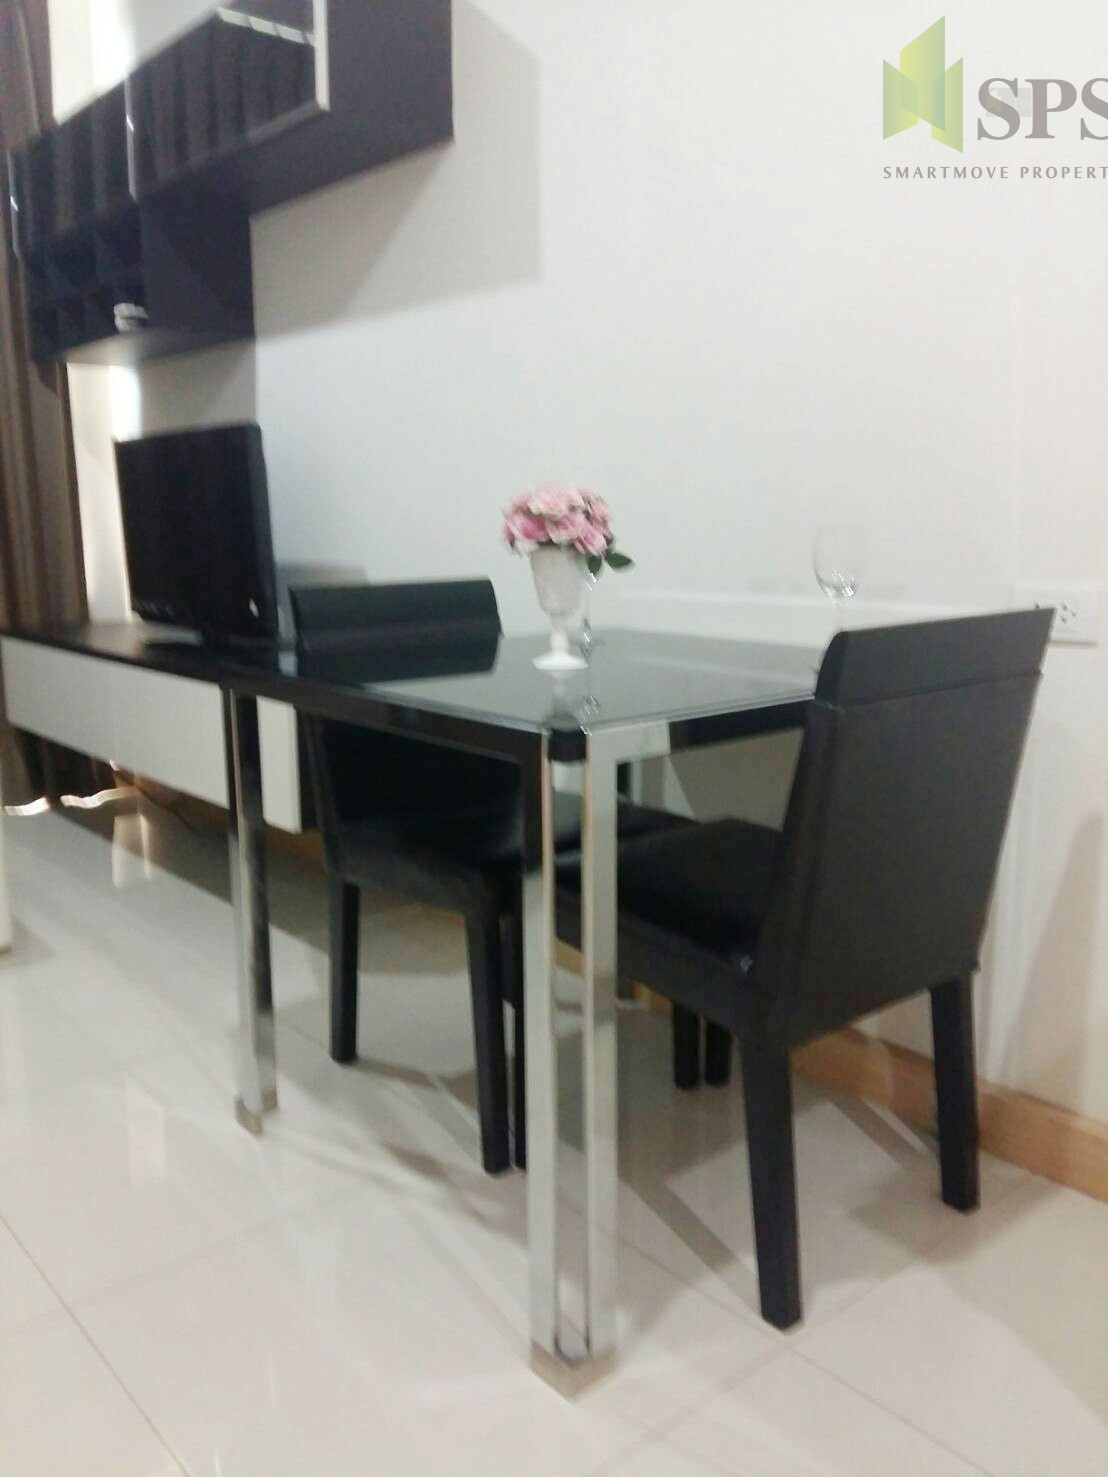 Fifty Fifth Tower Condo For Rent(SPSP49)